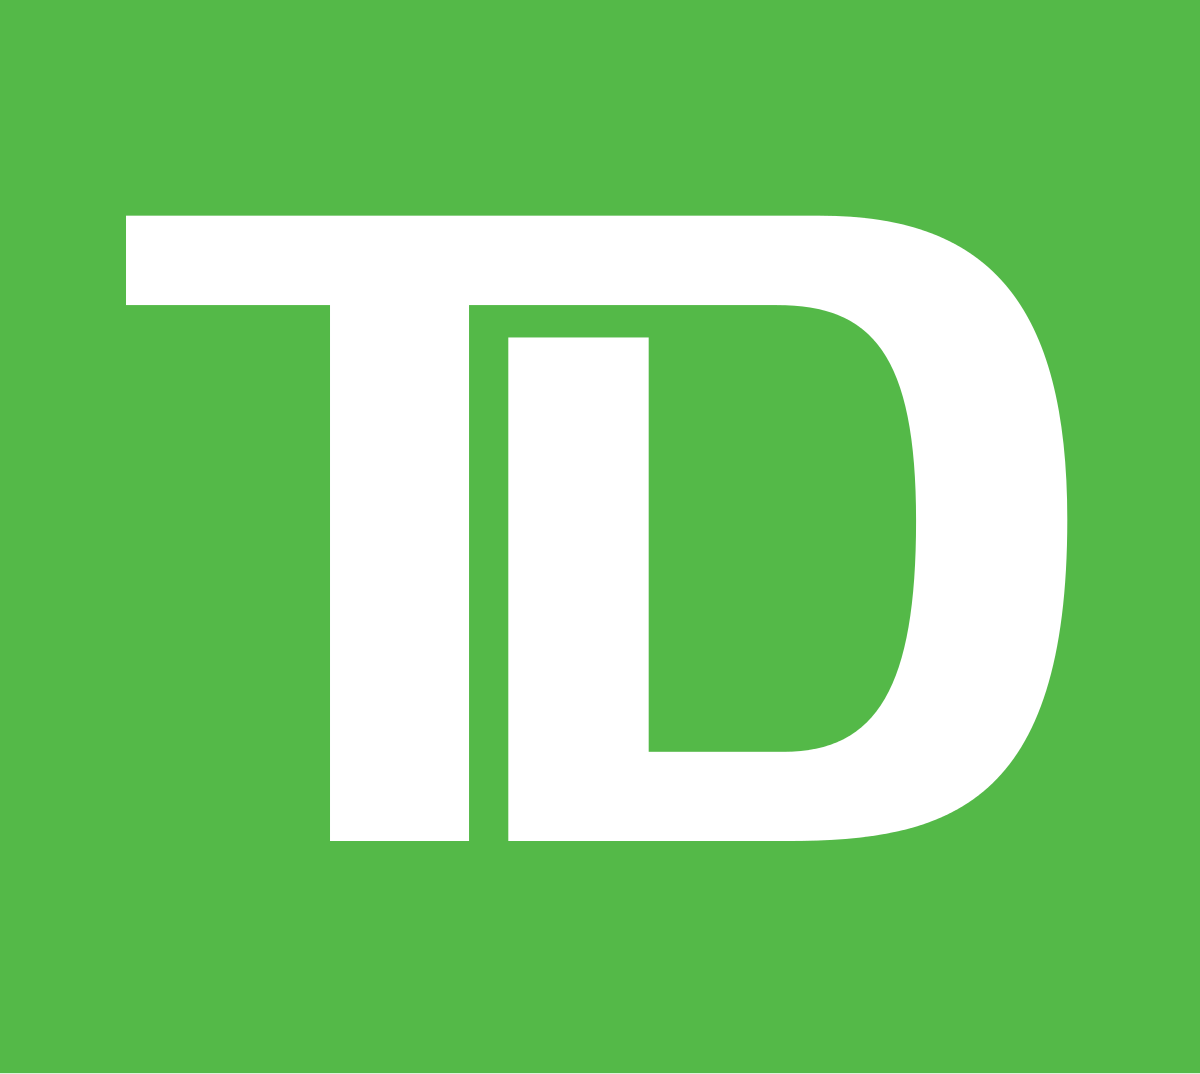 TD Bank overdraft litigation